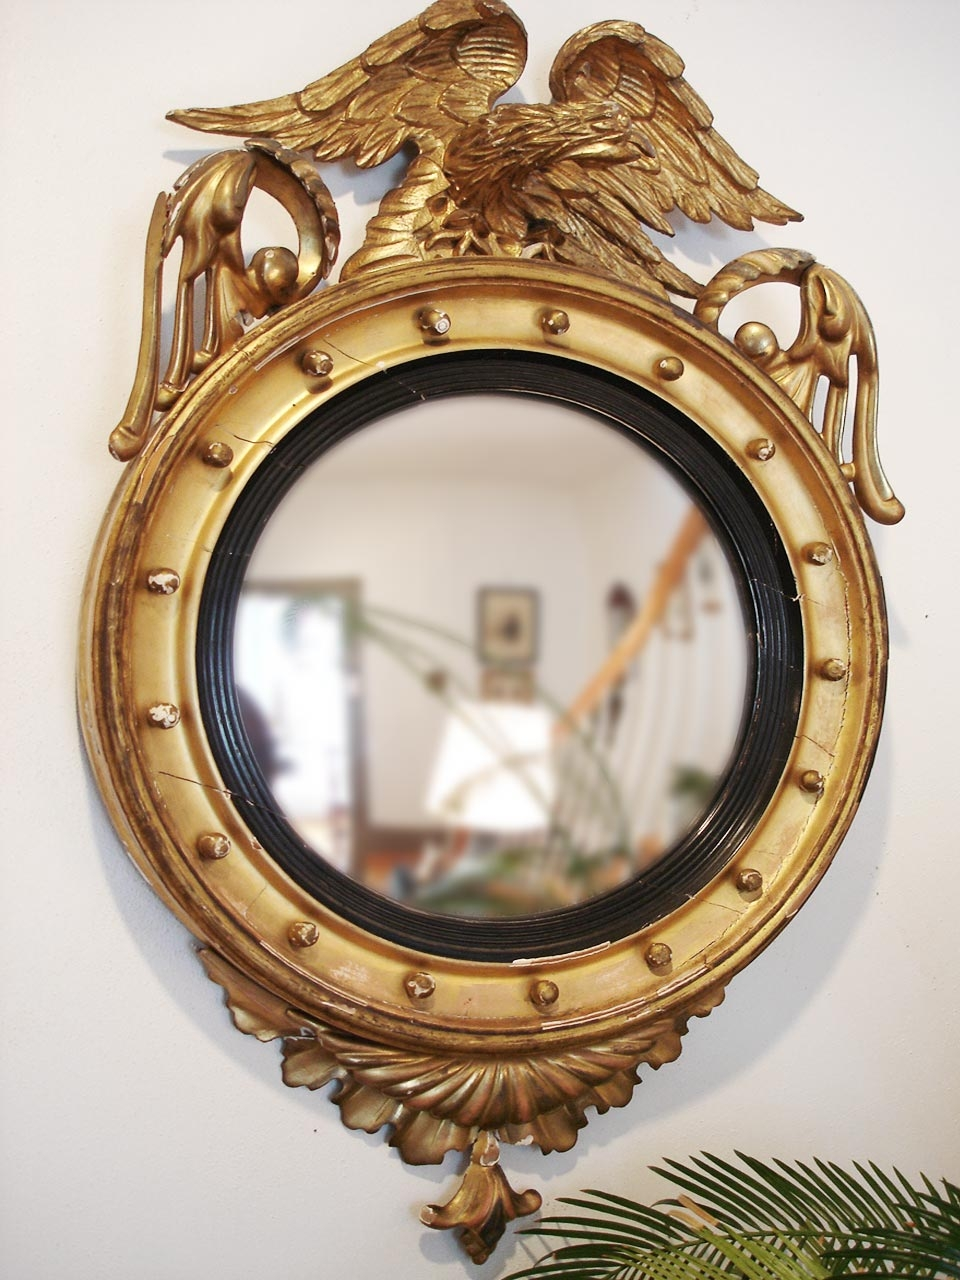 Eagle Federal Convex Mirror Spray Paint Black Or Different Color Throughout Convex Mirror Decorative (View 10 of 15)